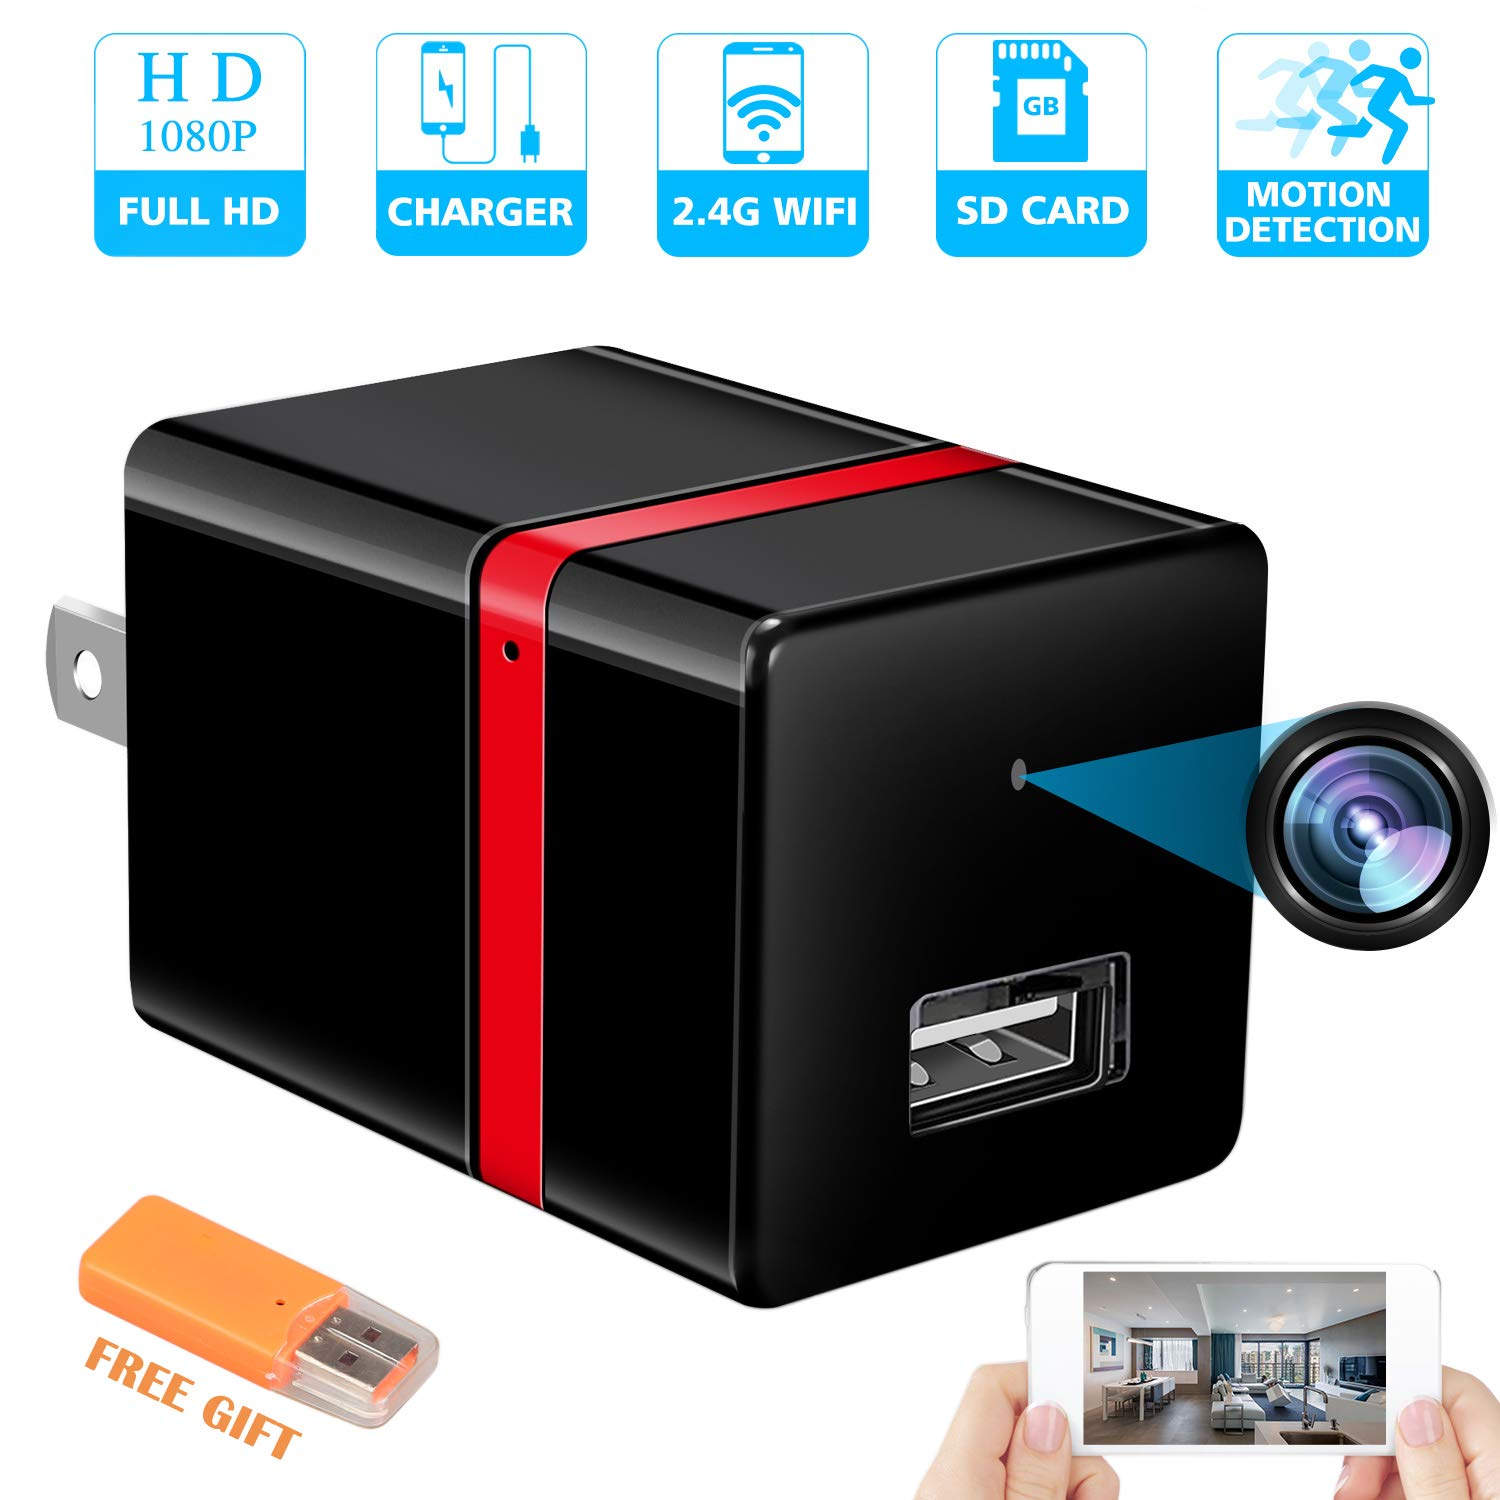 RZATU Spy Camera Wireless Hidden - USB Wall Charger Camera -Nanny Cam with Cell Phone App - Spy Camera WiFi - Home Security - 1080P HD - Motion Detection - Smart Snap Cam by RZATU